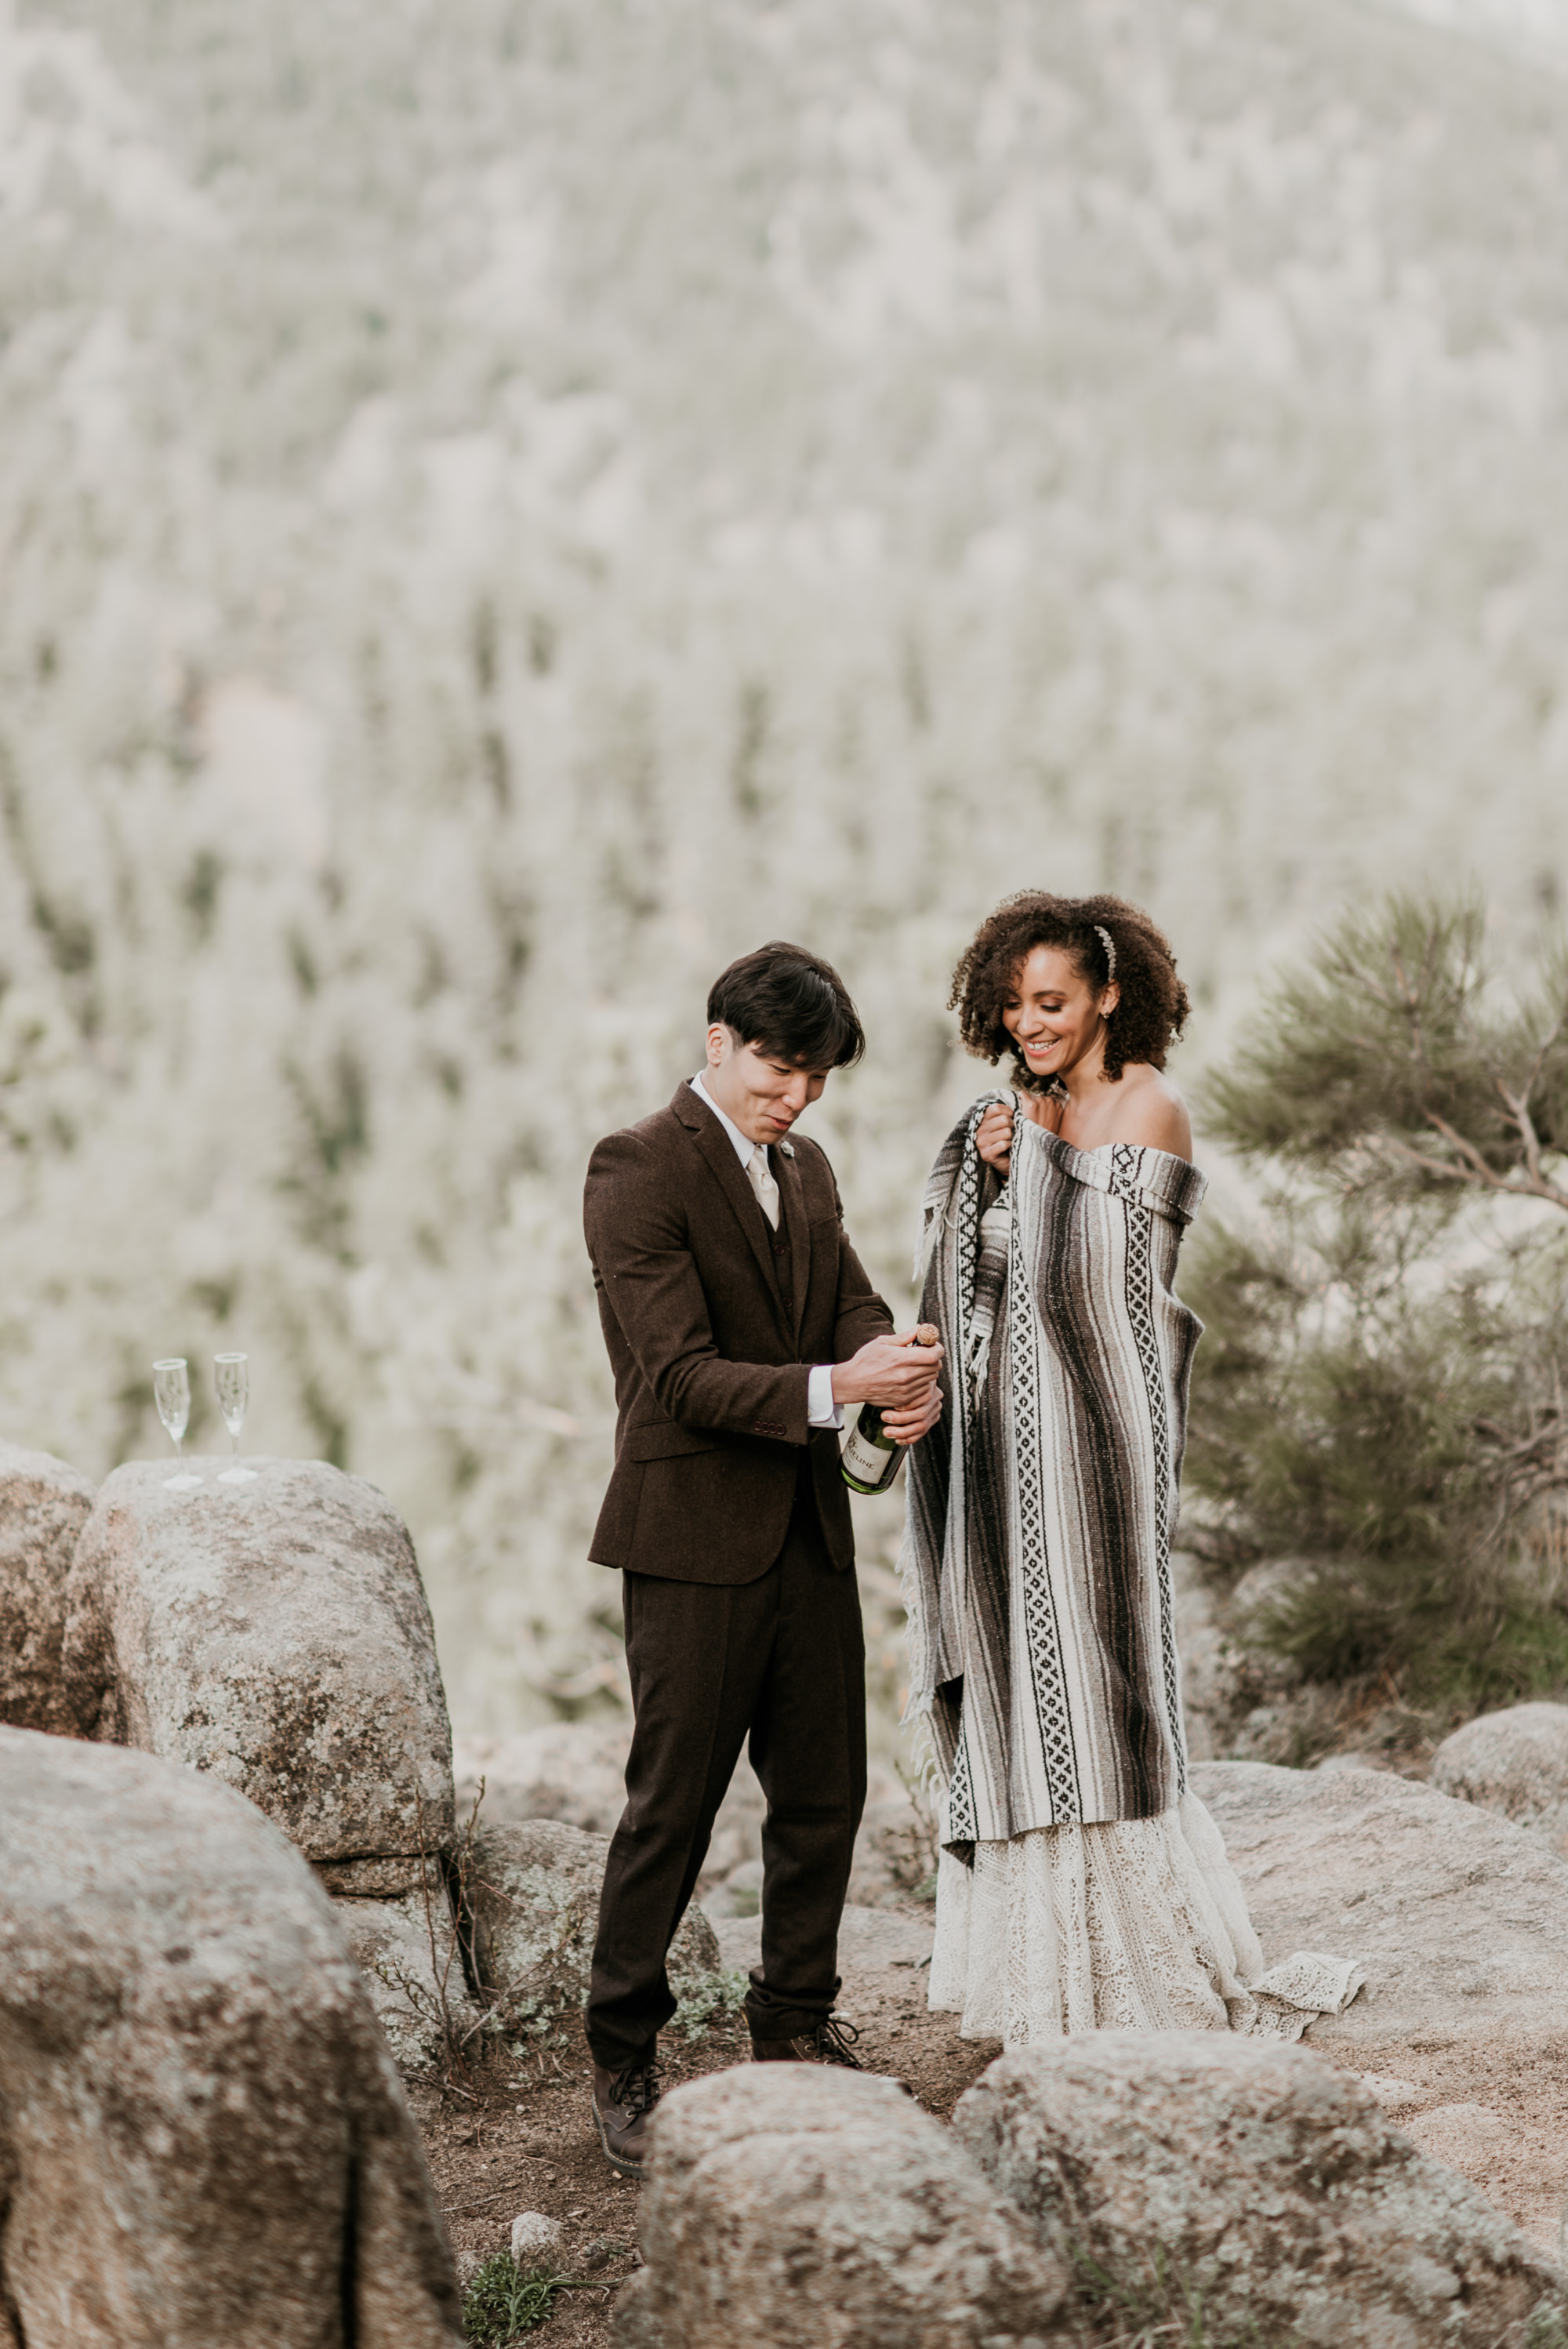 Enjoy champagne during your elopement but leave no trace!